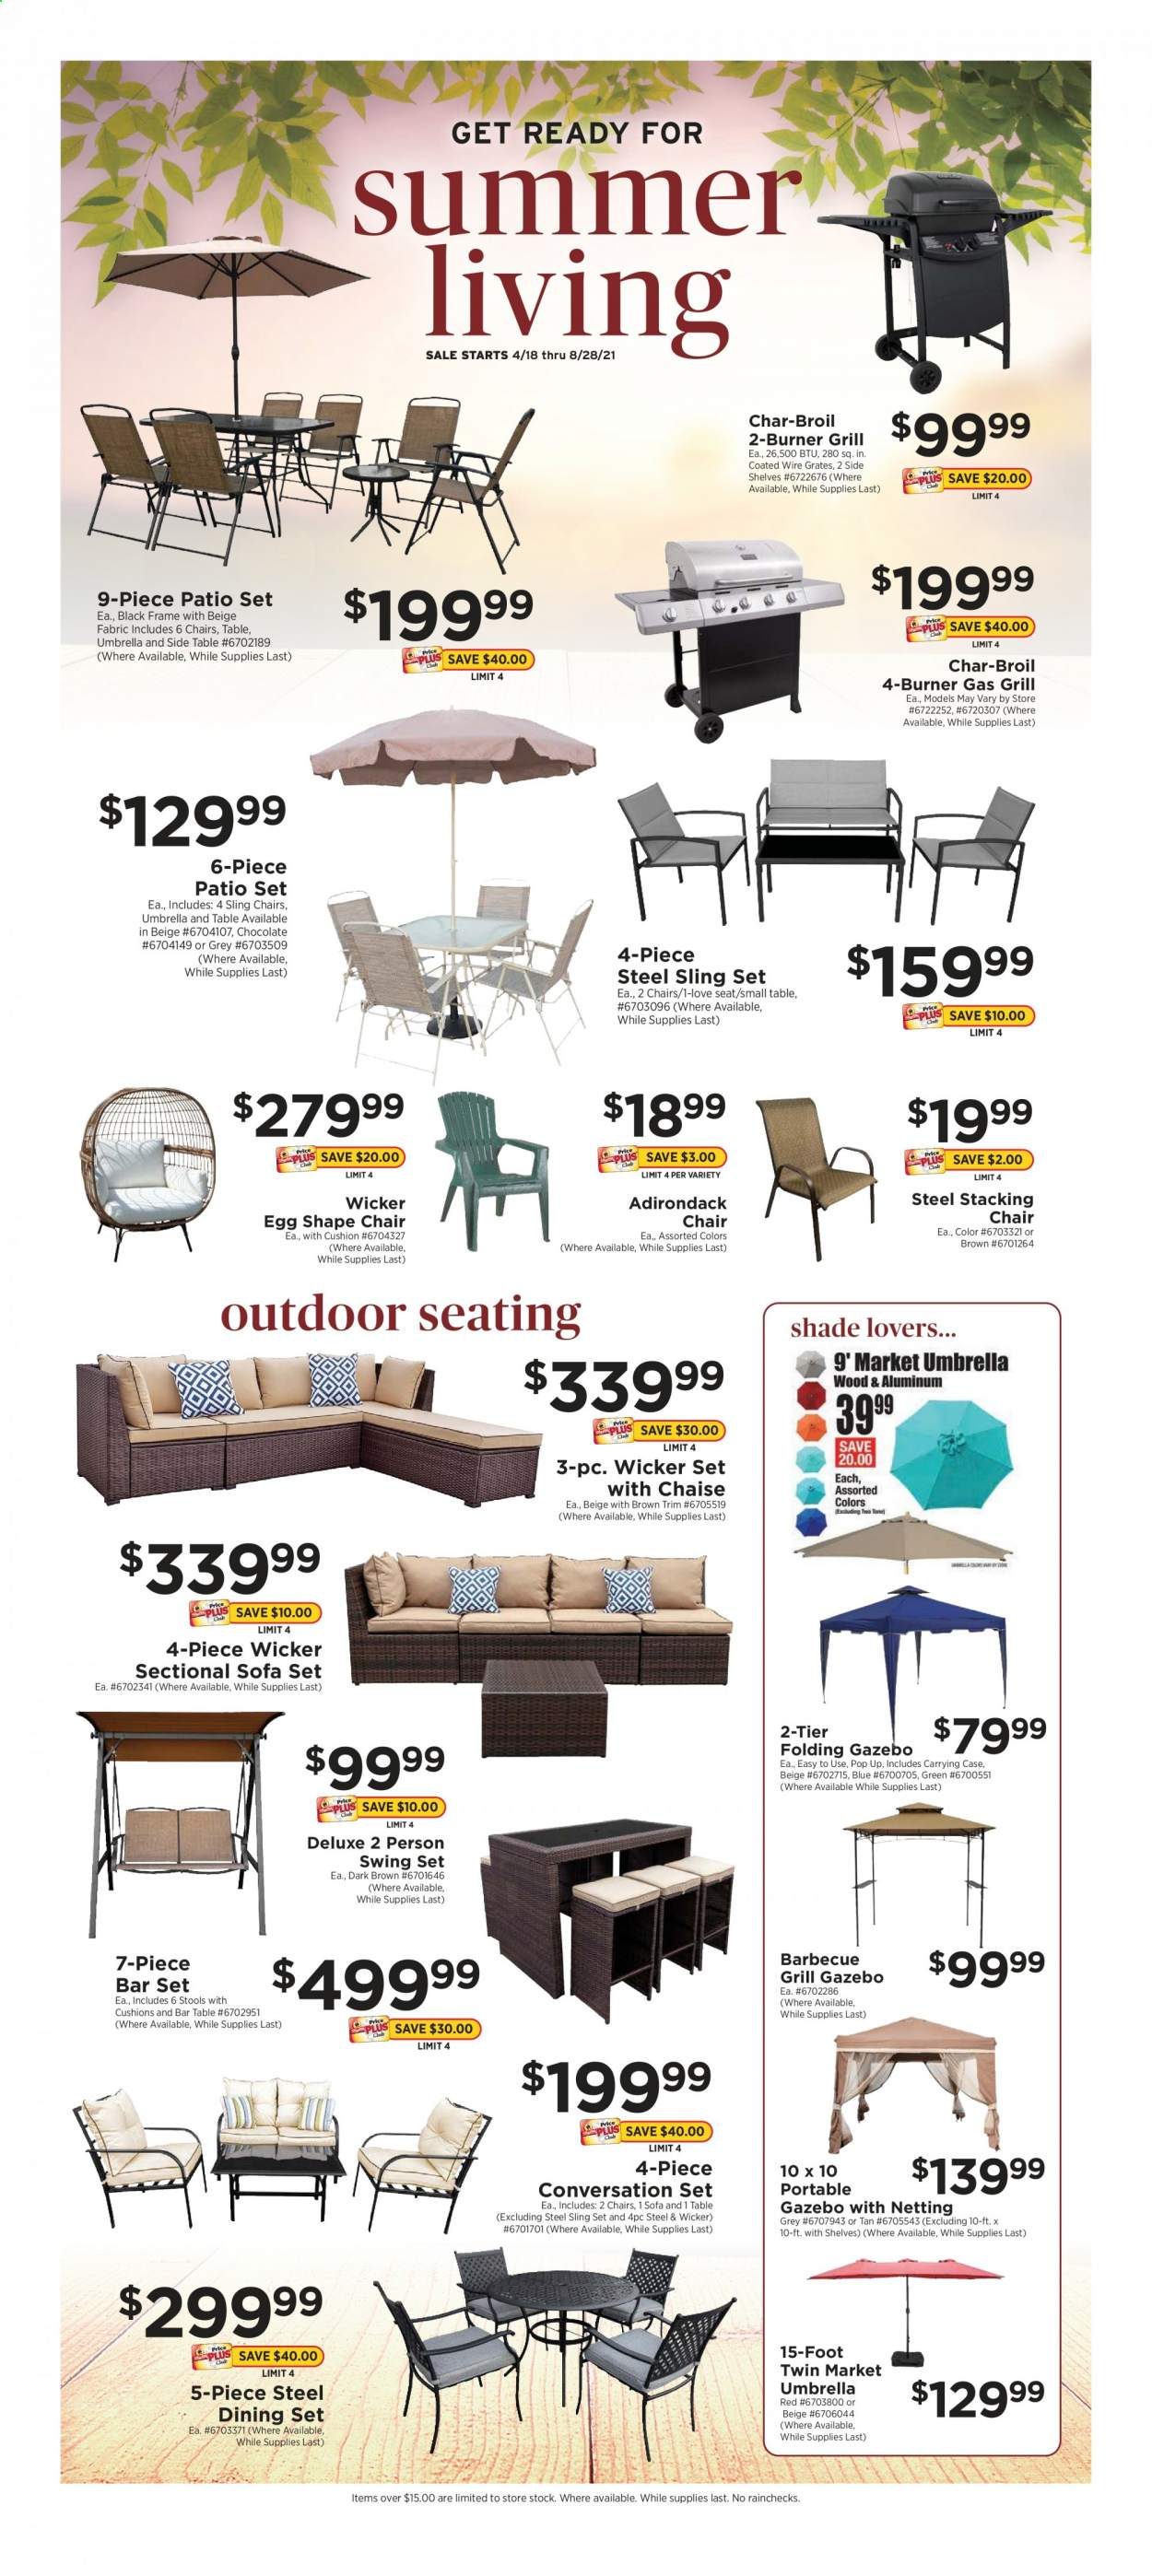 ShopRite Summer Living Ad from april 18 to august 28 2021